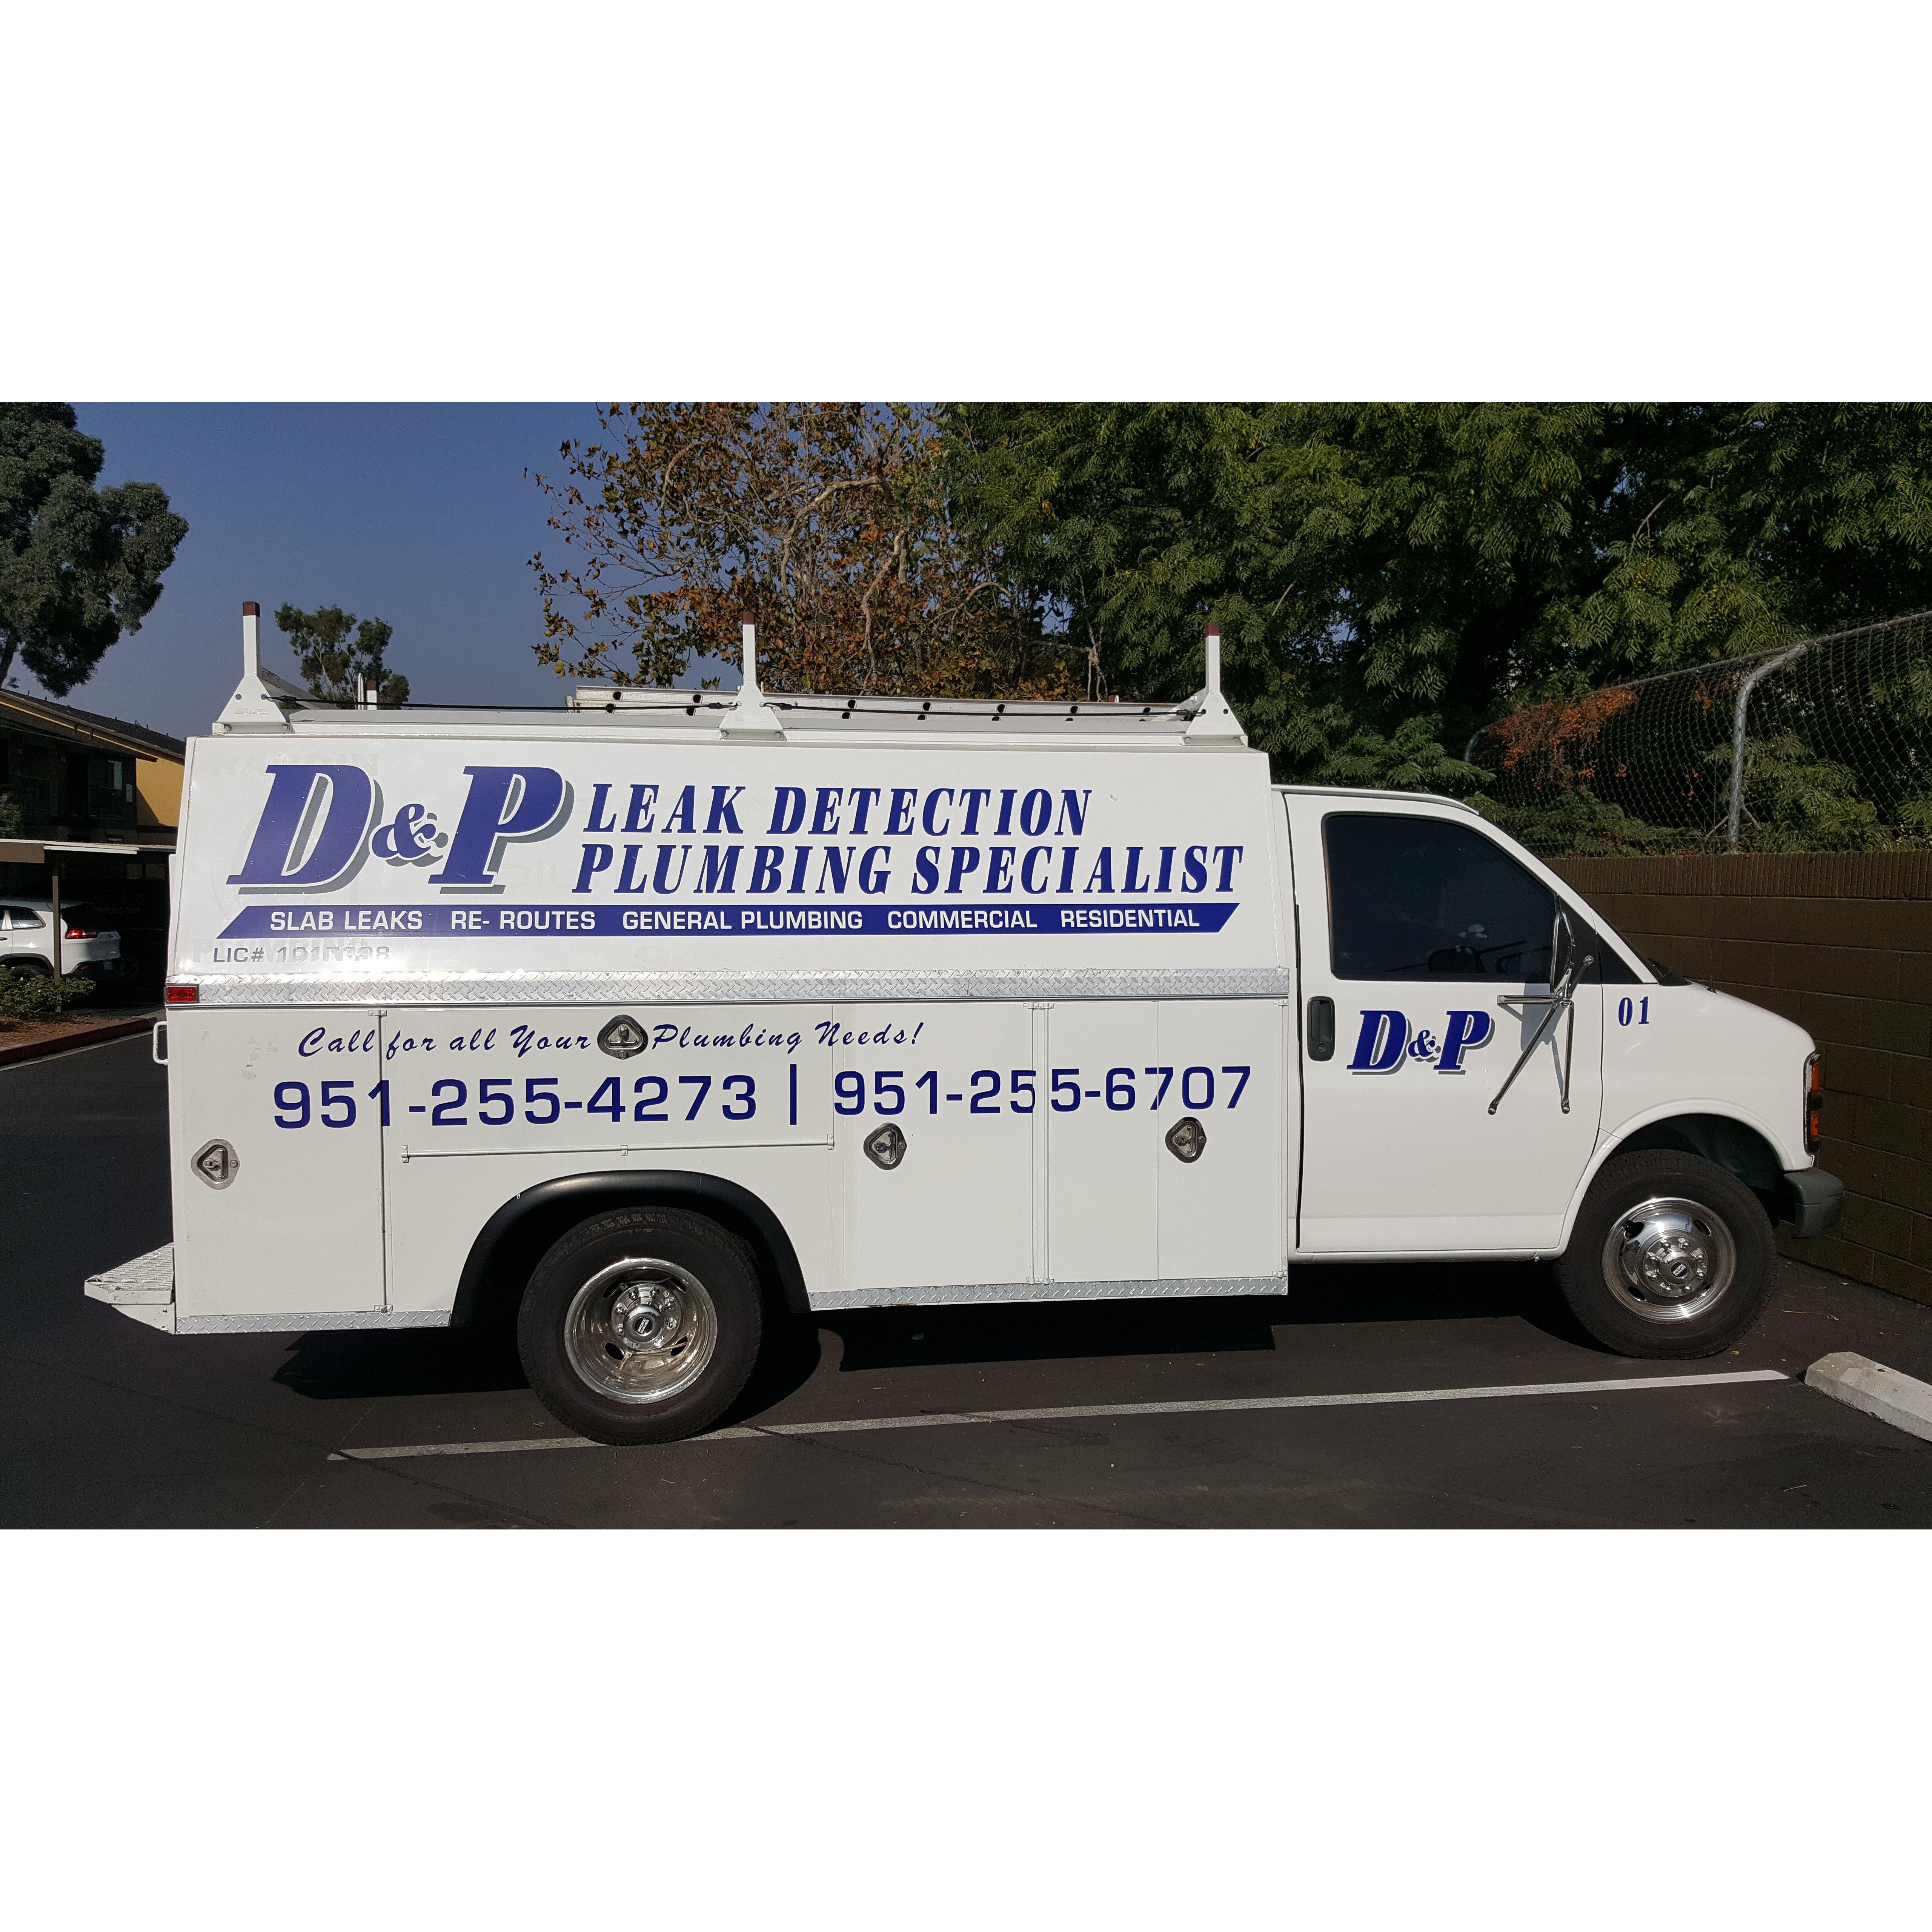 D&P LEAK DETECTION - Norco, CA 92860 - (951)255-6707 | ShowMeLocal.com